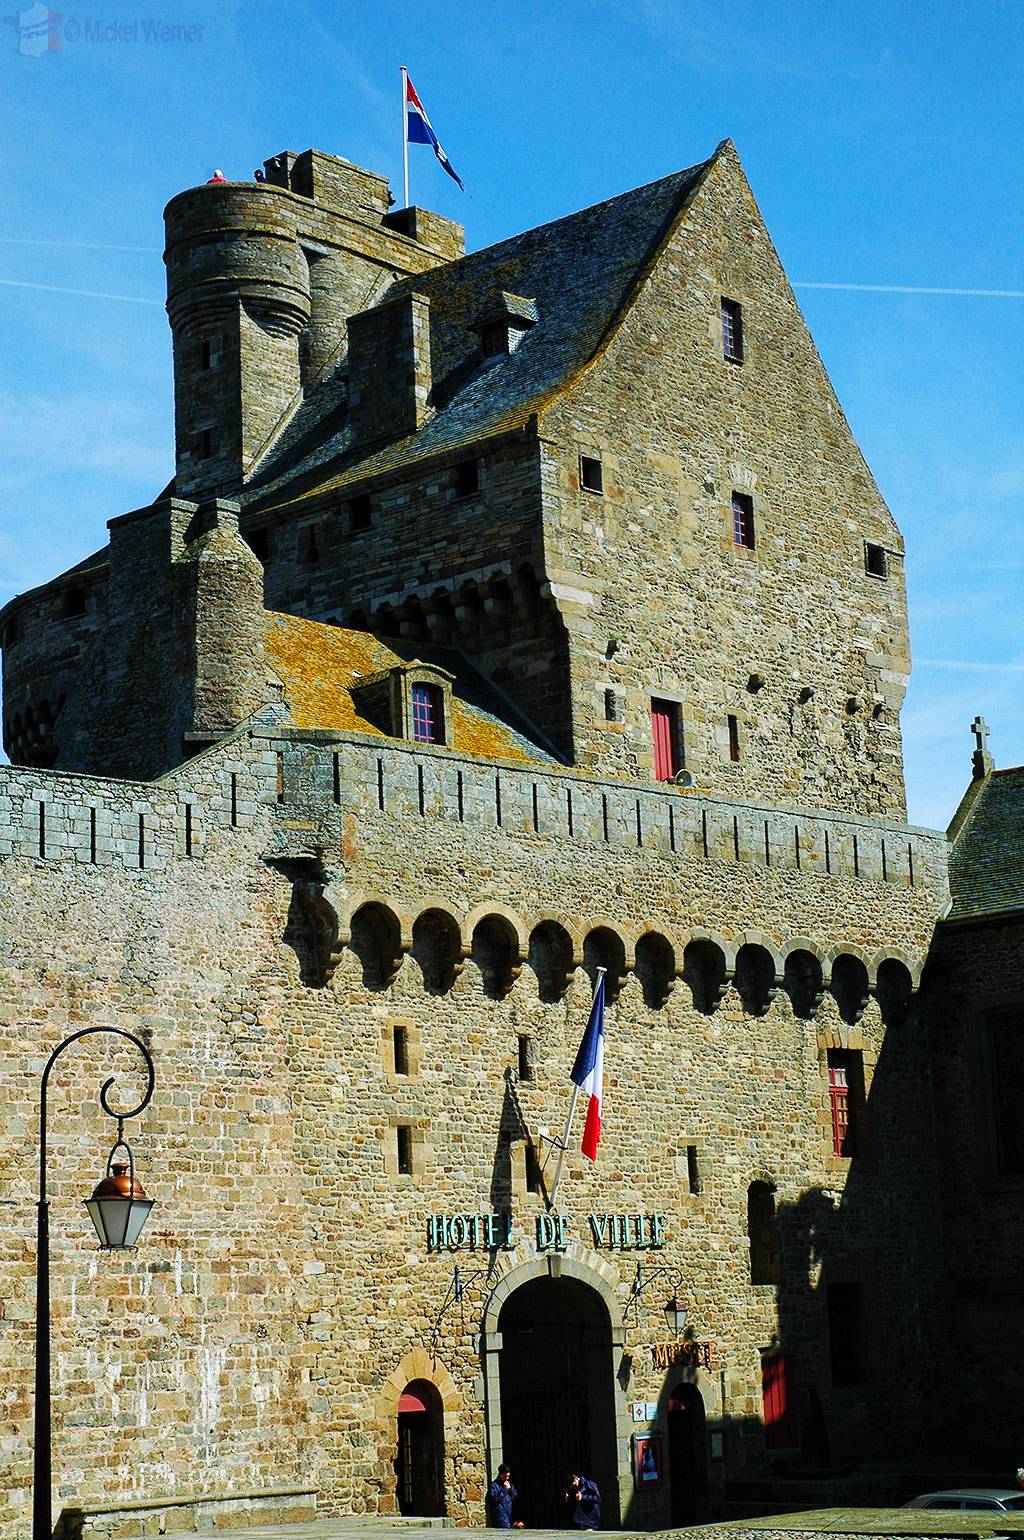 Part of City Hall in the fortress tower of St. Malo